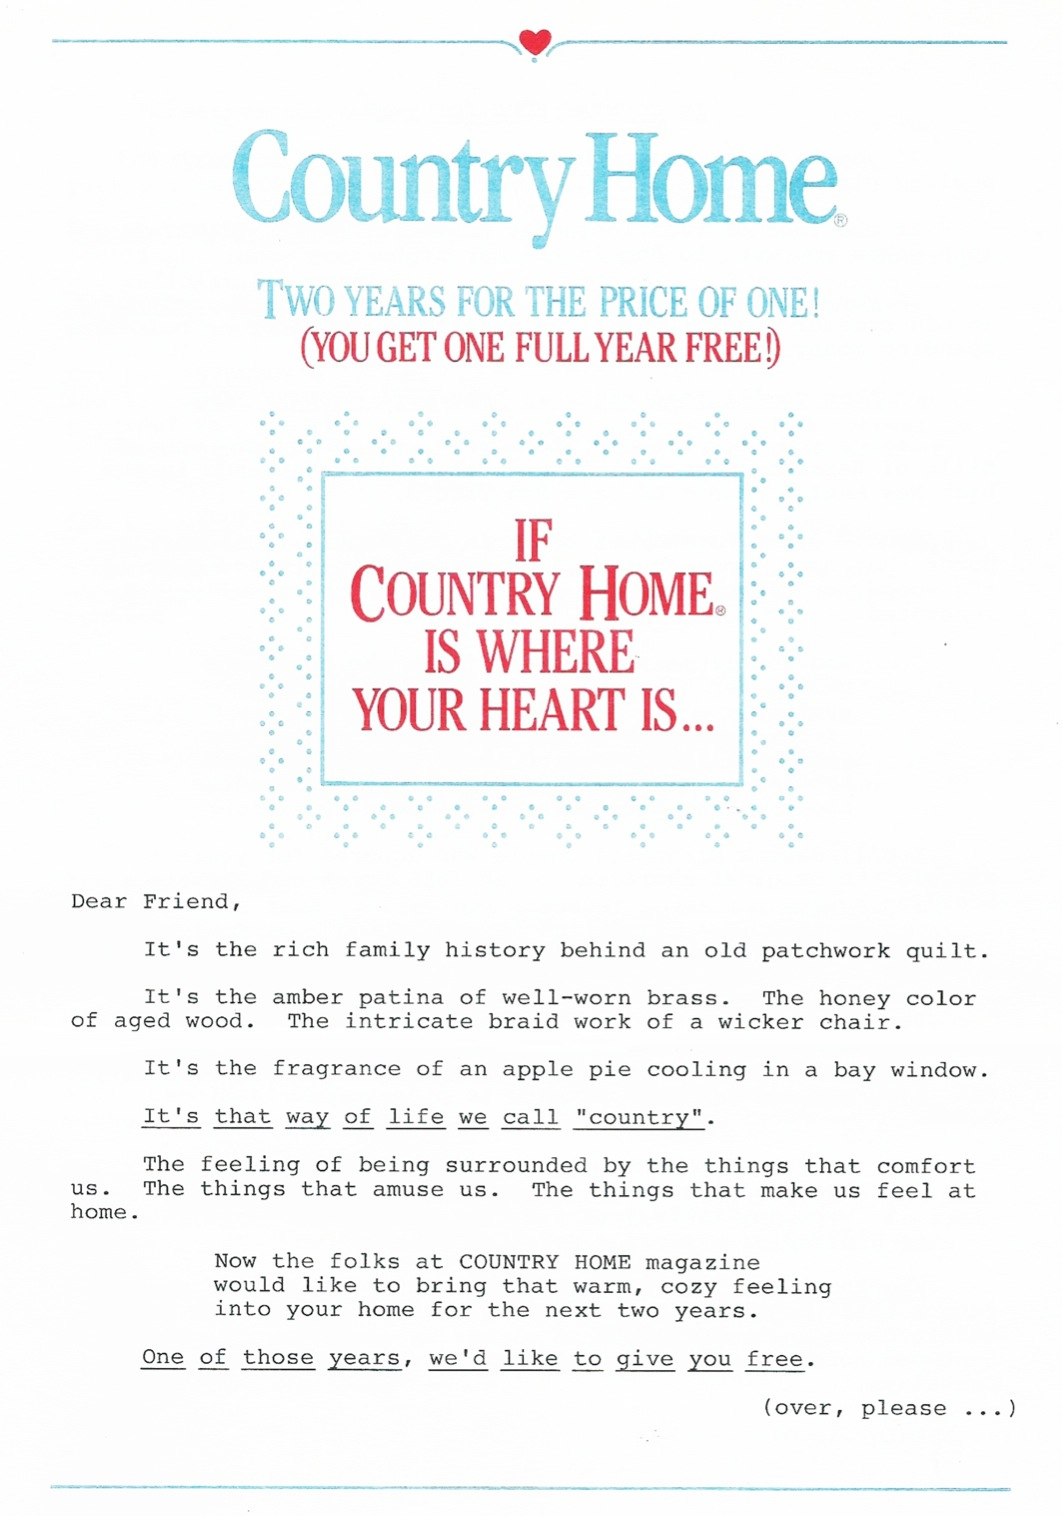 image of Country Home #2 direct mail sales letter page 1